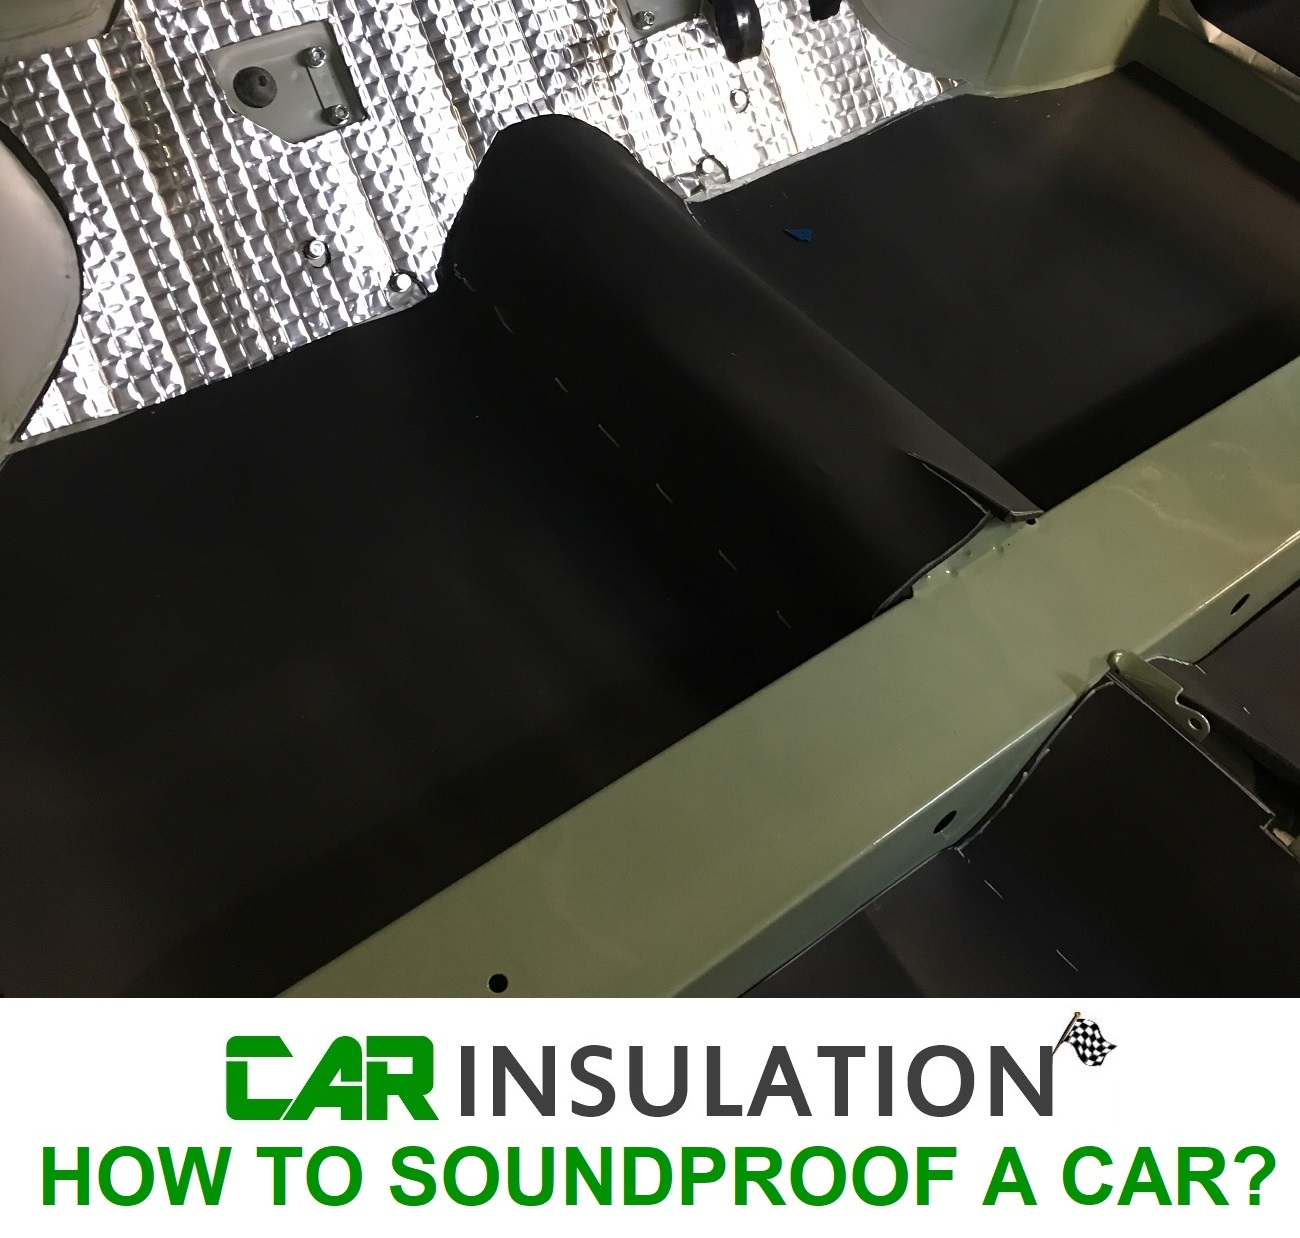 HOW TO SOUNDPROOF A CAR